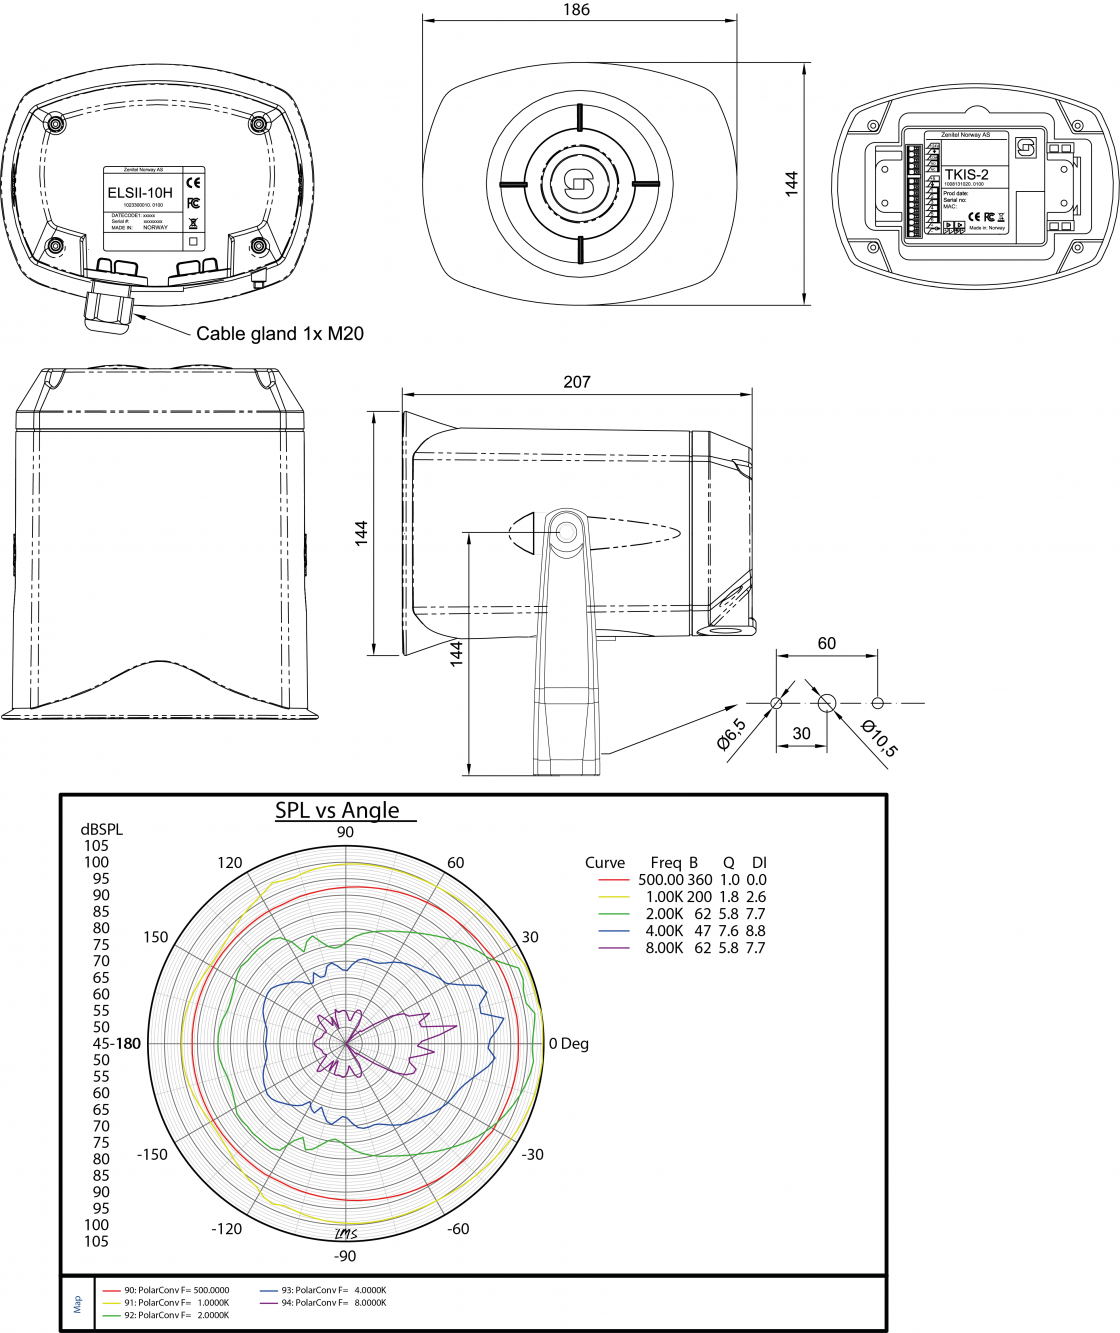 Elsii 10h Ip Horn Speaker As Well Hearing Induction Loop Systems On Pa Sound System Diagram Dimensions